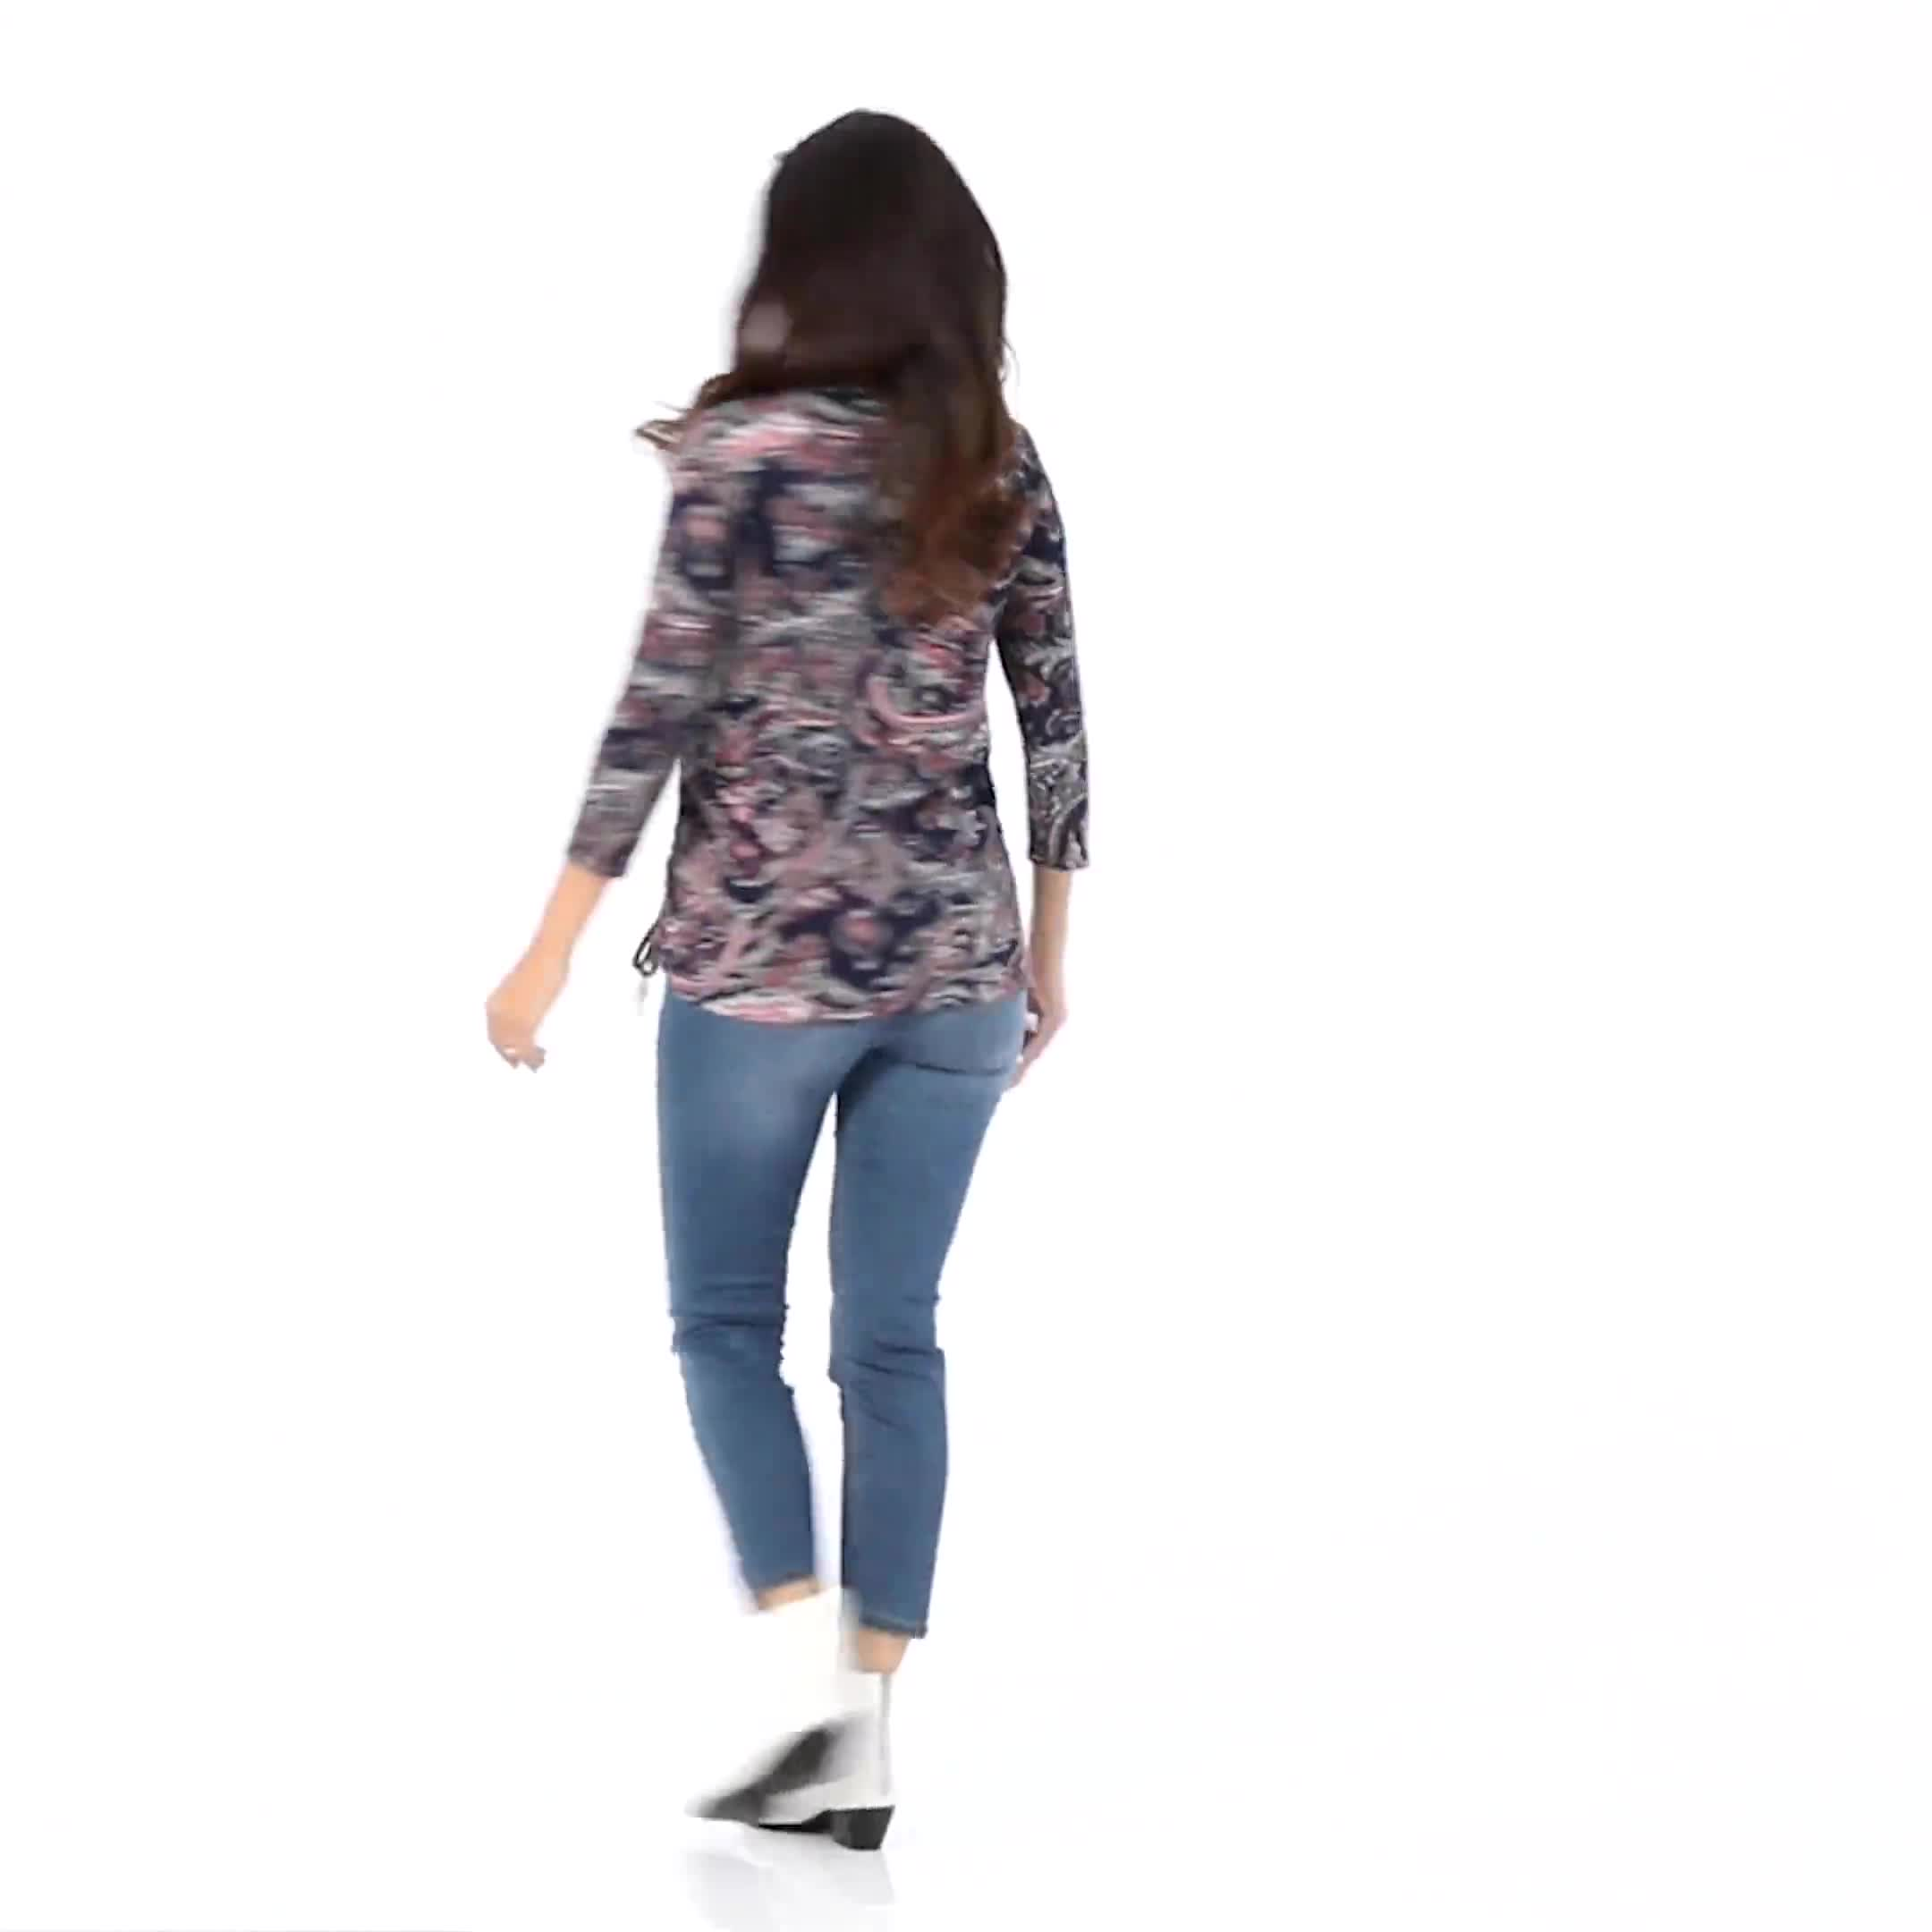 Dressbarn Paisley Hacci Cinched Knit Top - Misses - Video